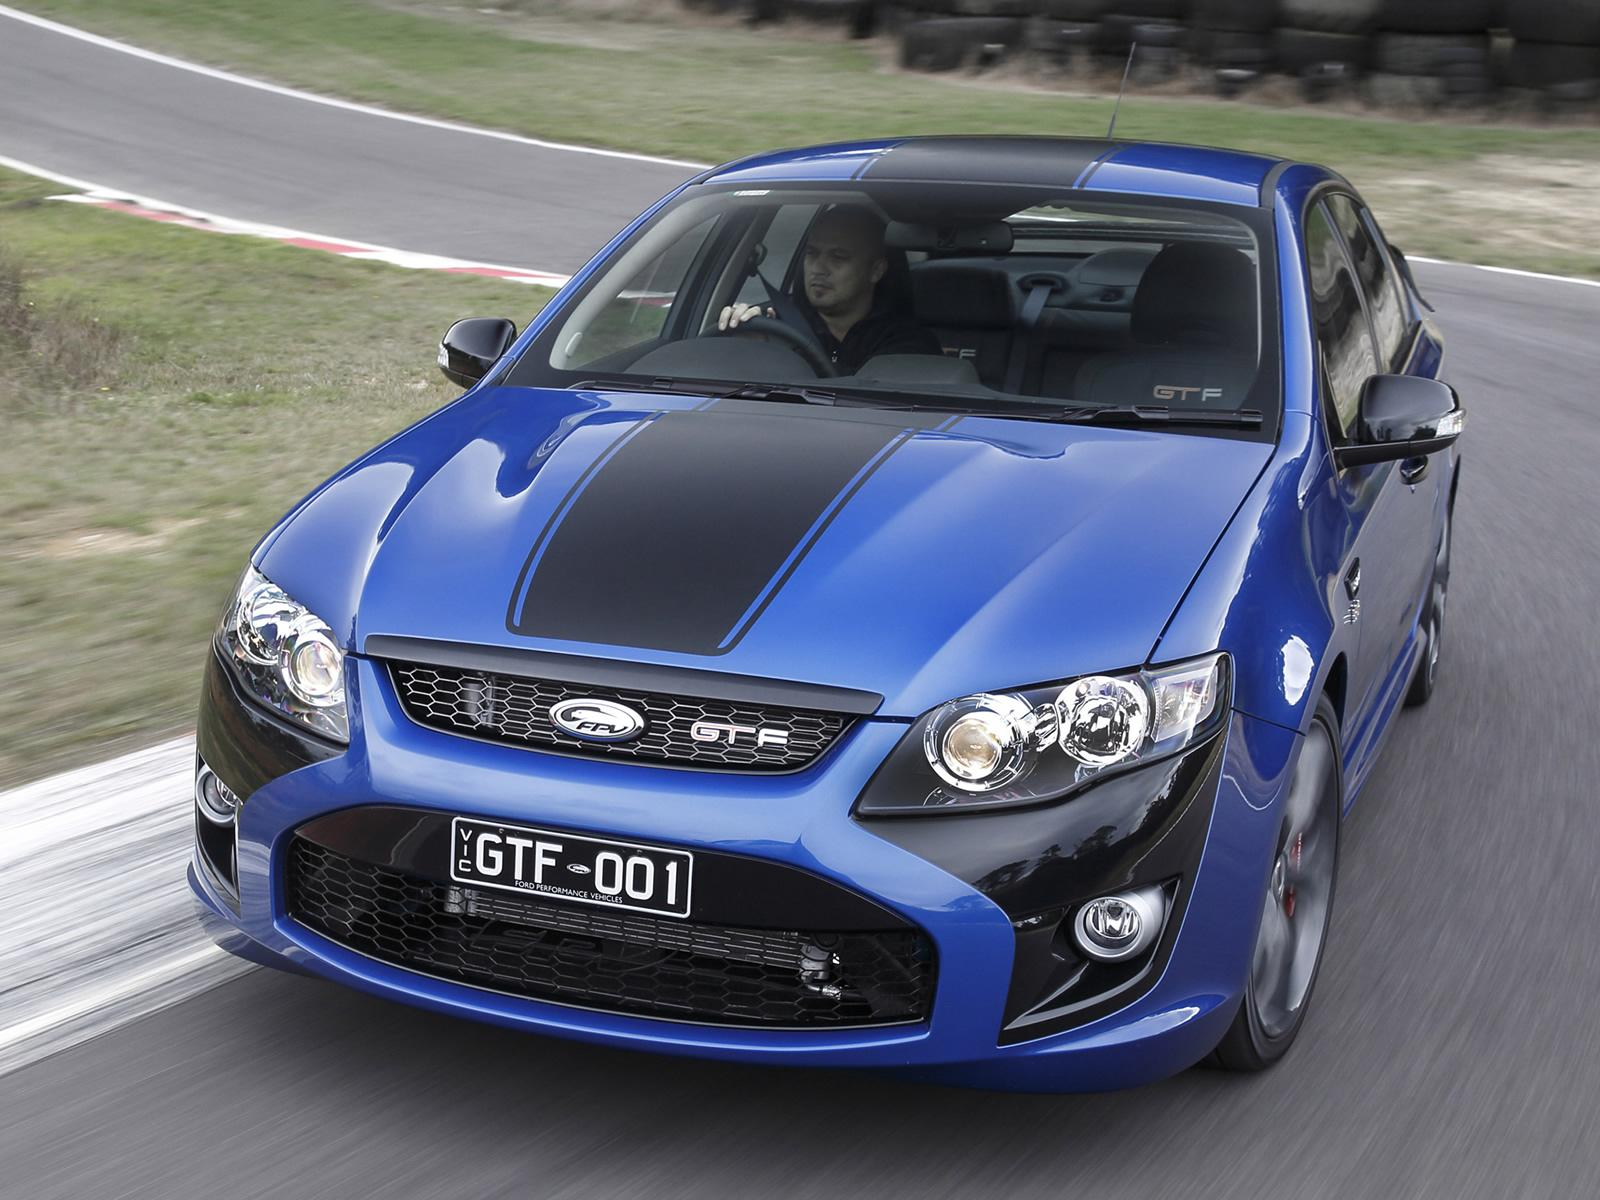 Ford Cars - News: FPV GT F 351 officially unveiled